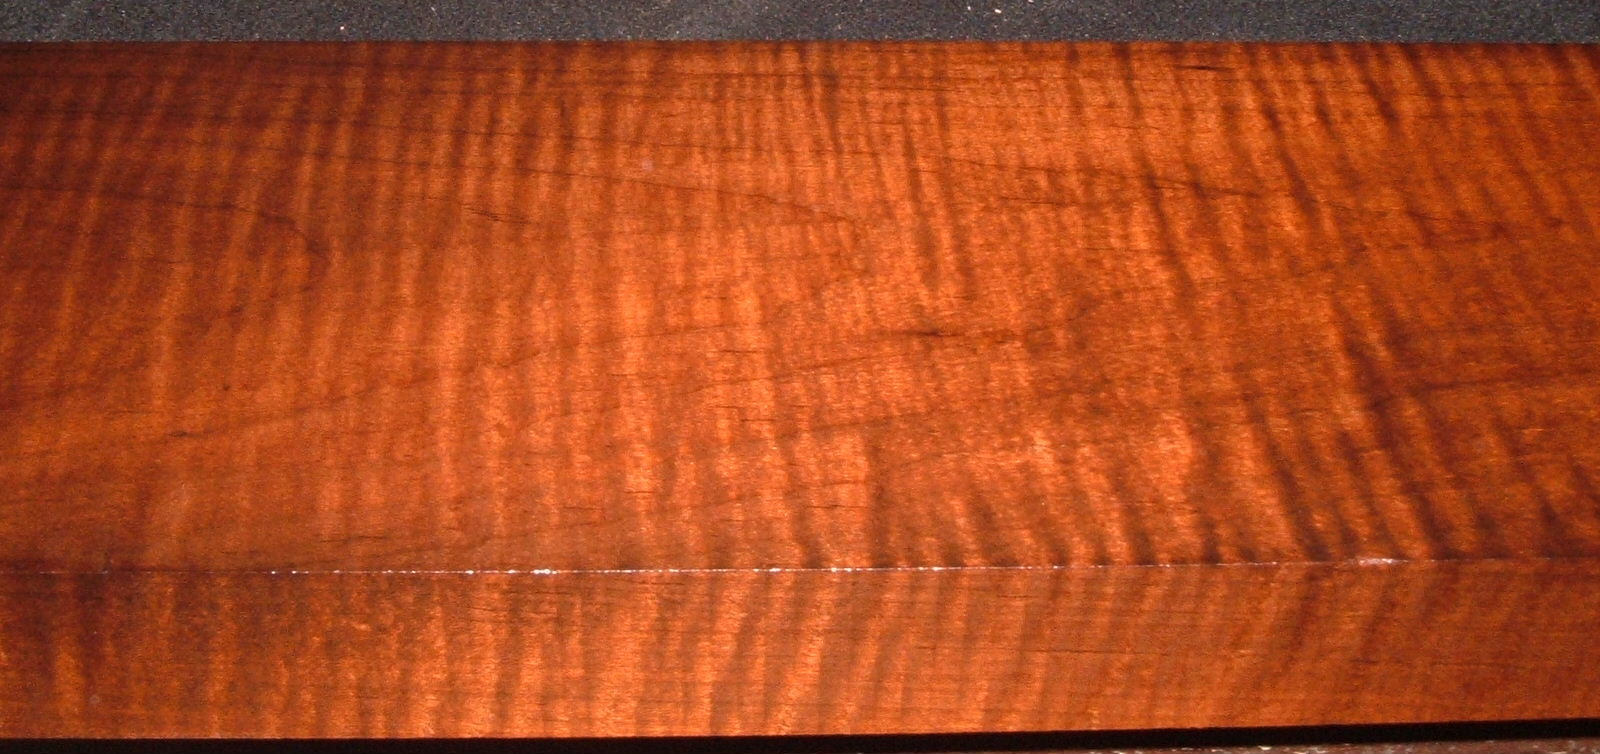 RM2104-123, 1-5/8x6-1/4x42, Roasted Curly Maple